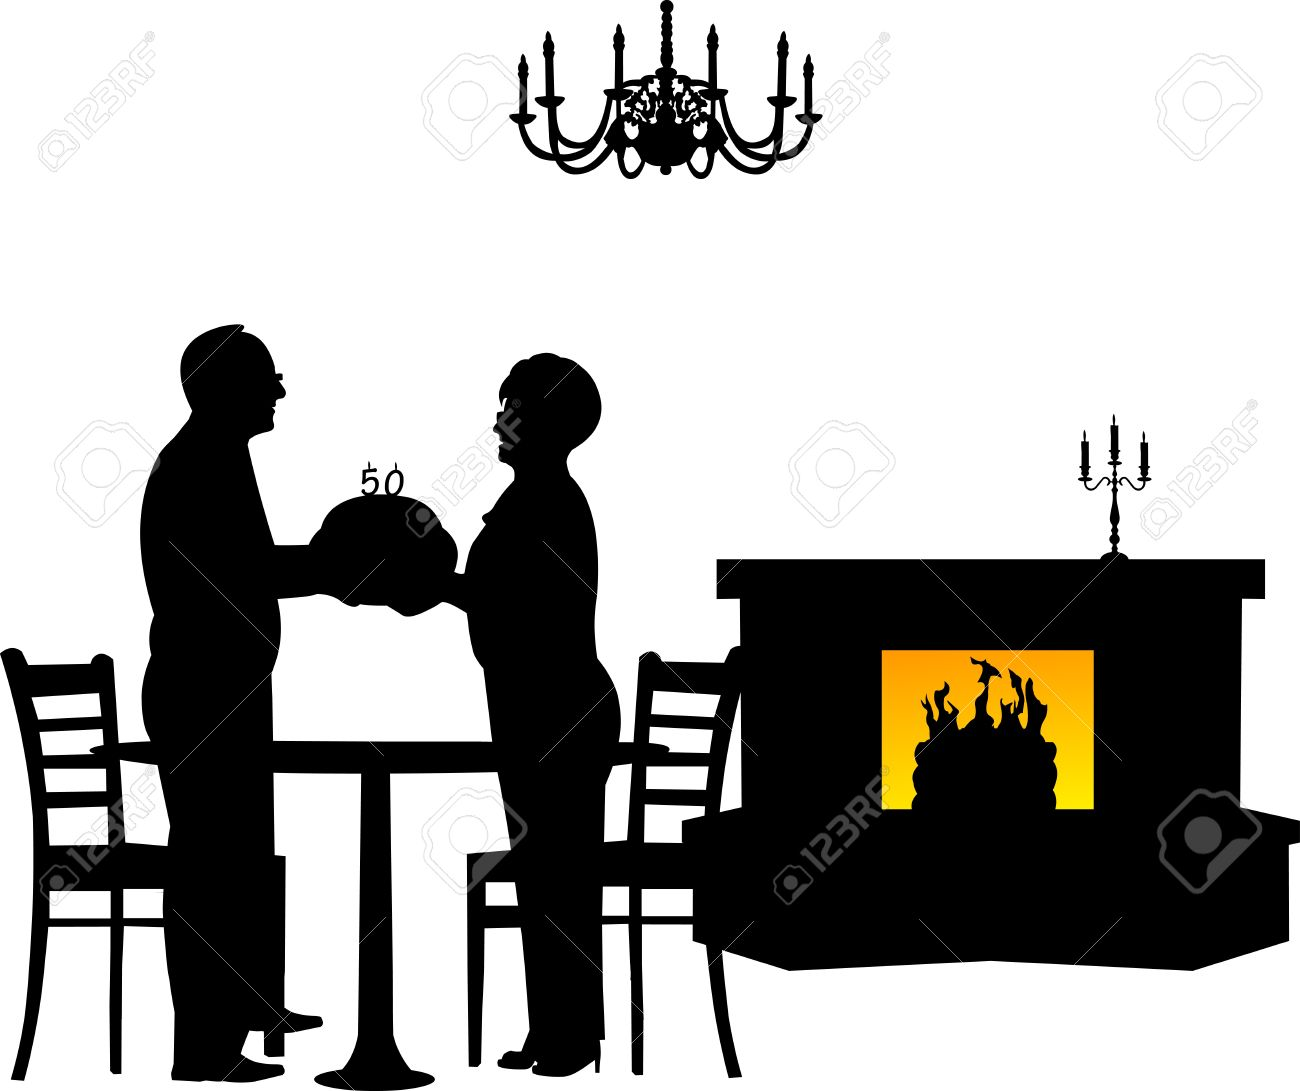 11,210 Fireplace Stock Vector Illustration And Royalty Free.